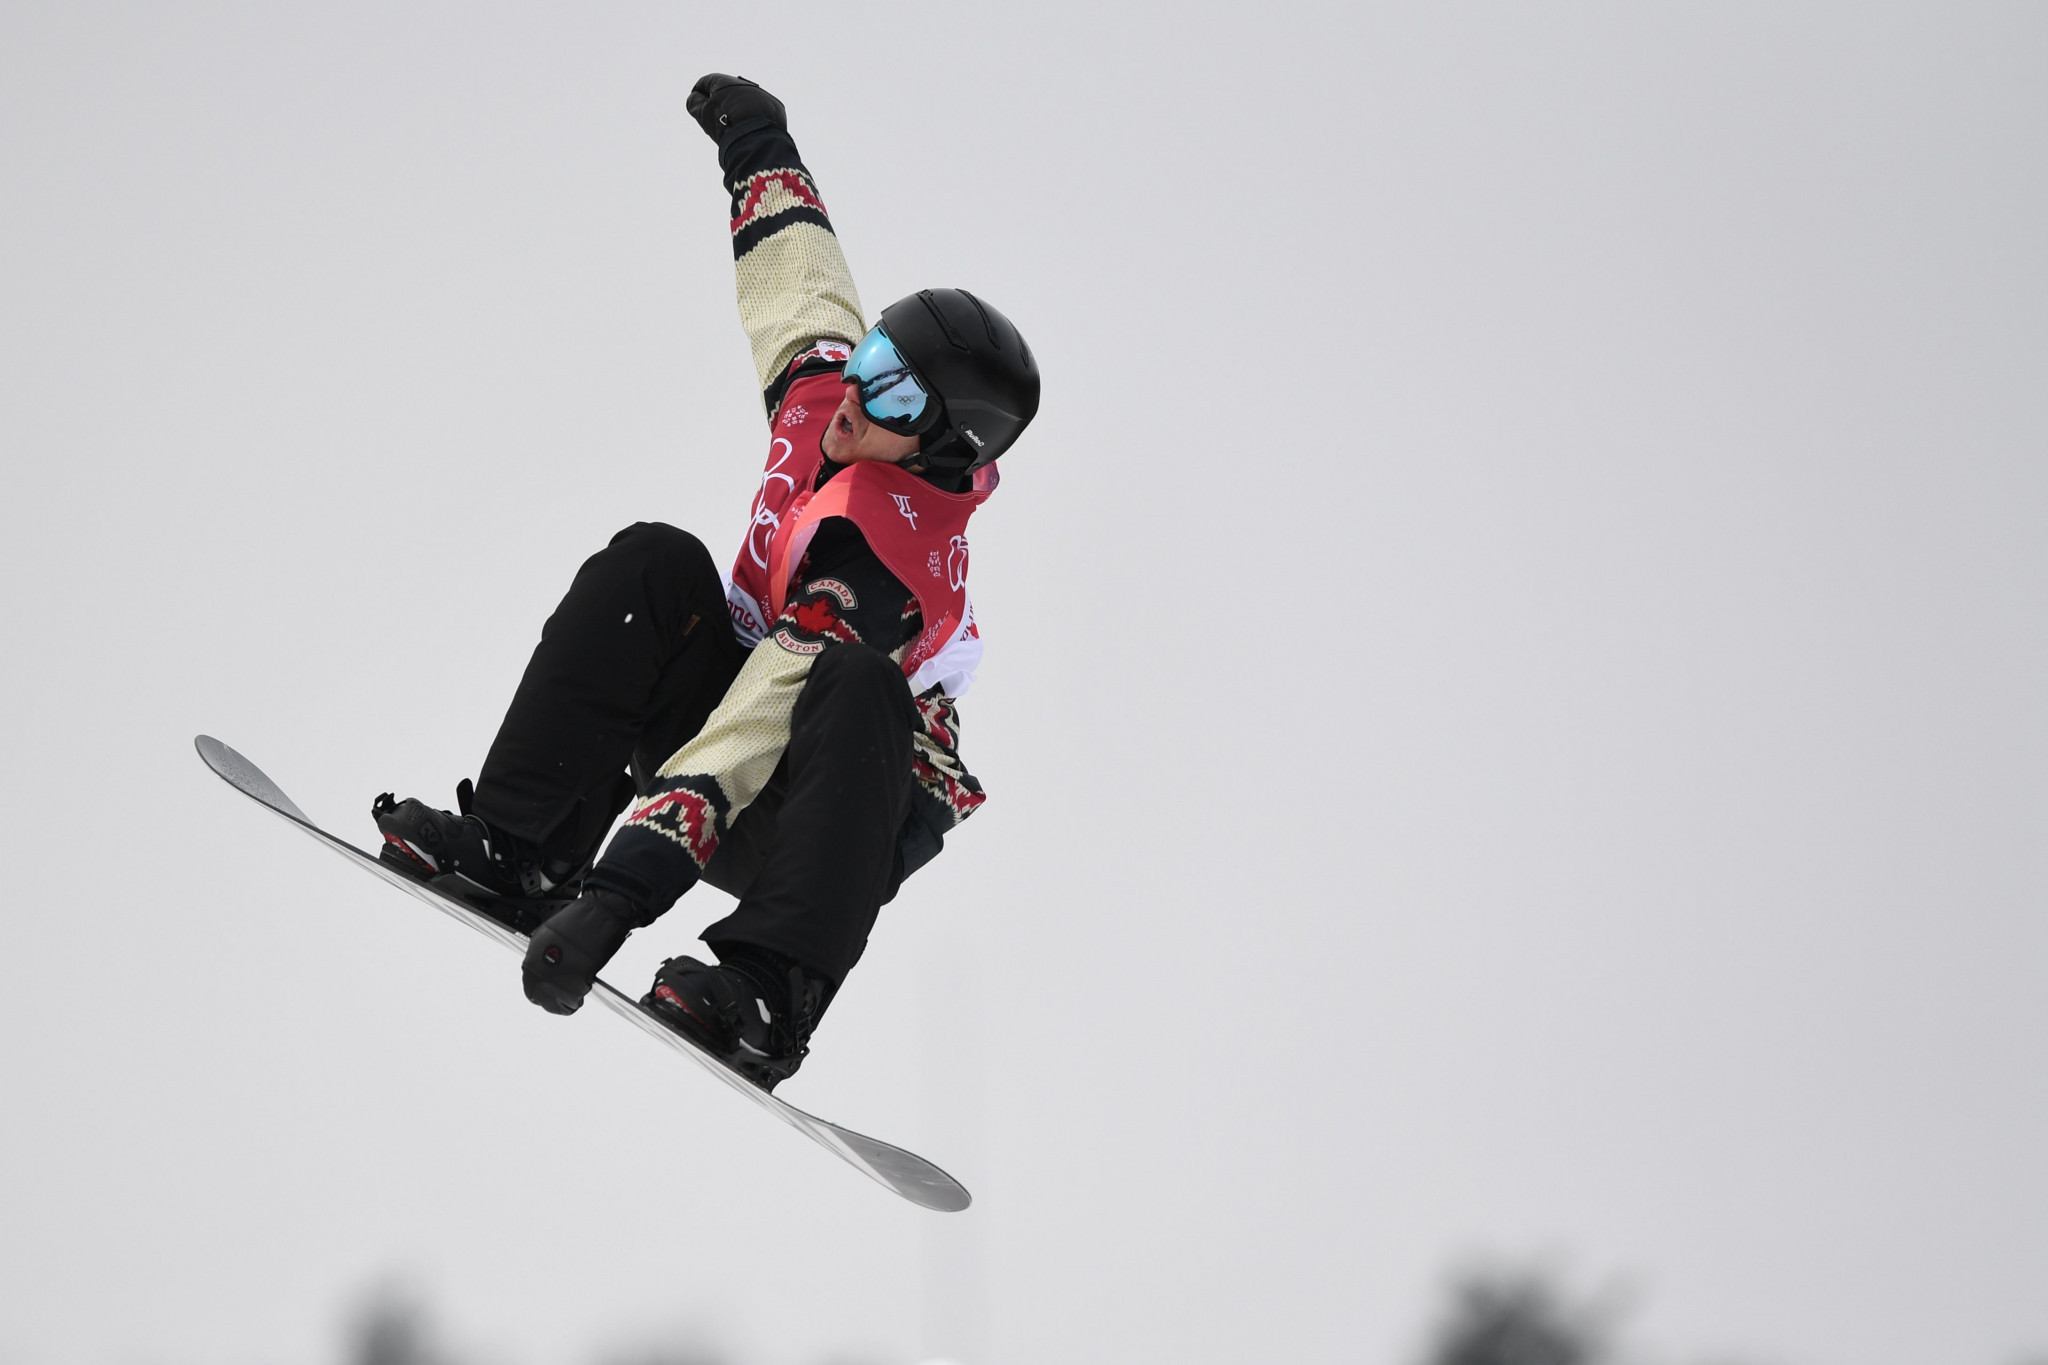 Parrot claims big air triumph on return to action at FIS Snowboard World Cup